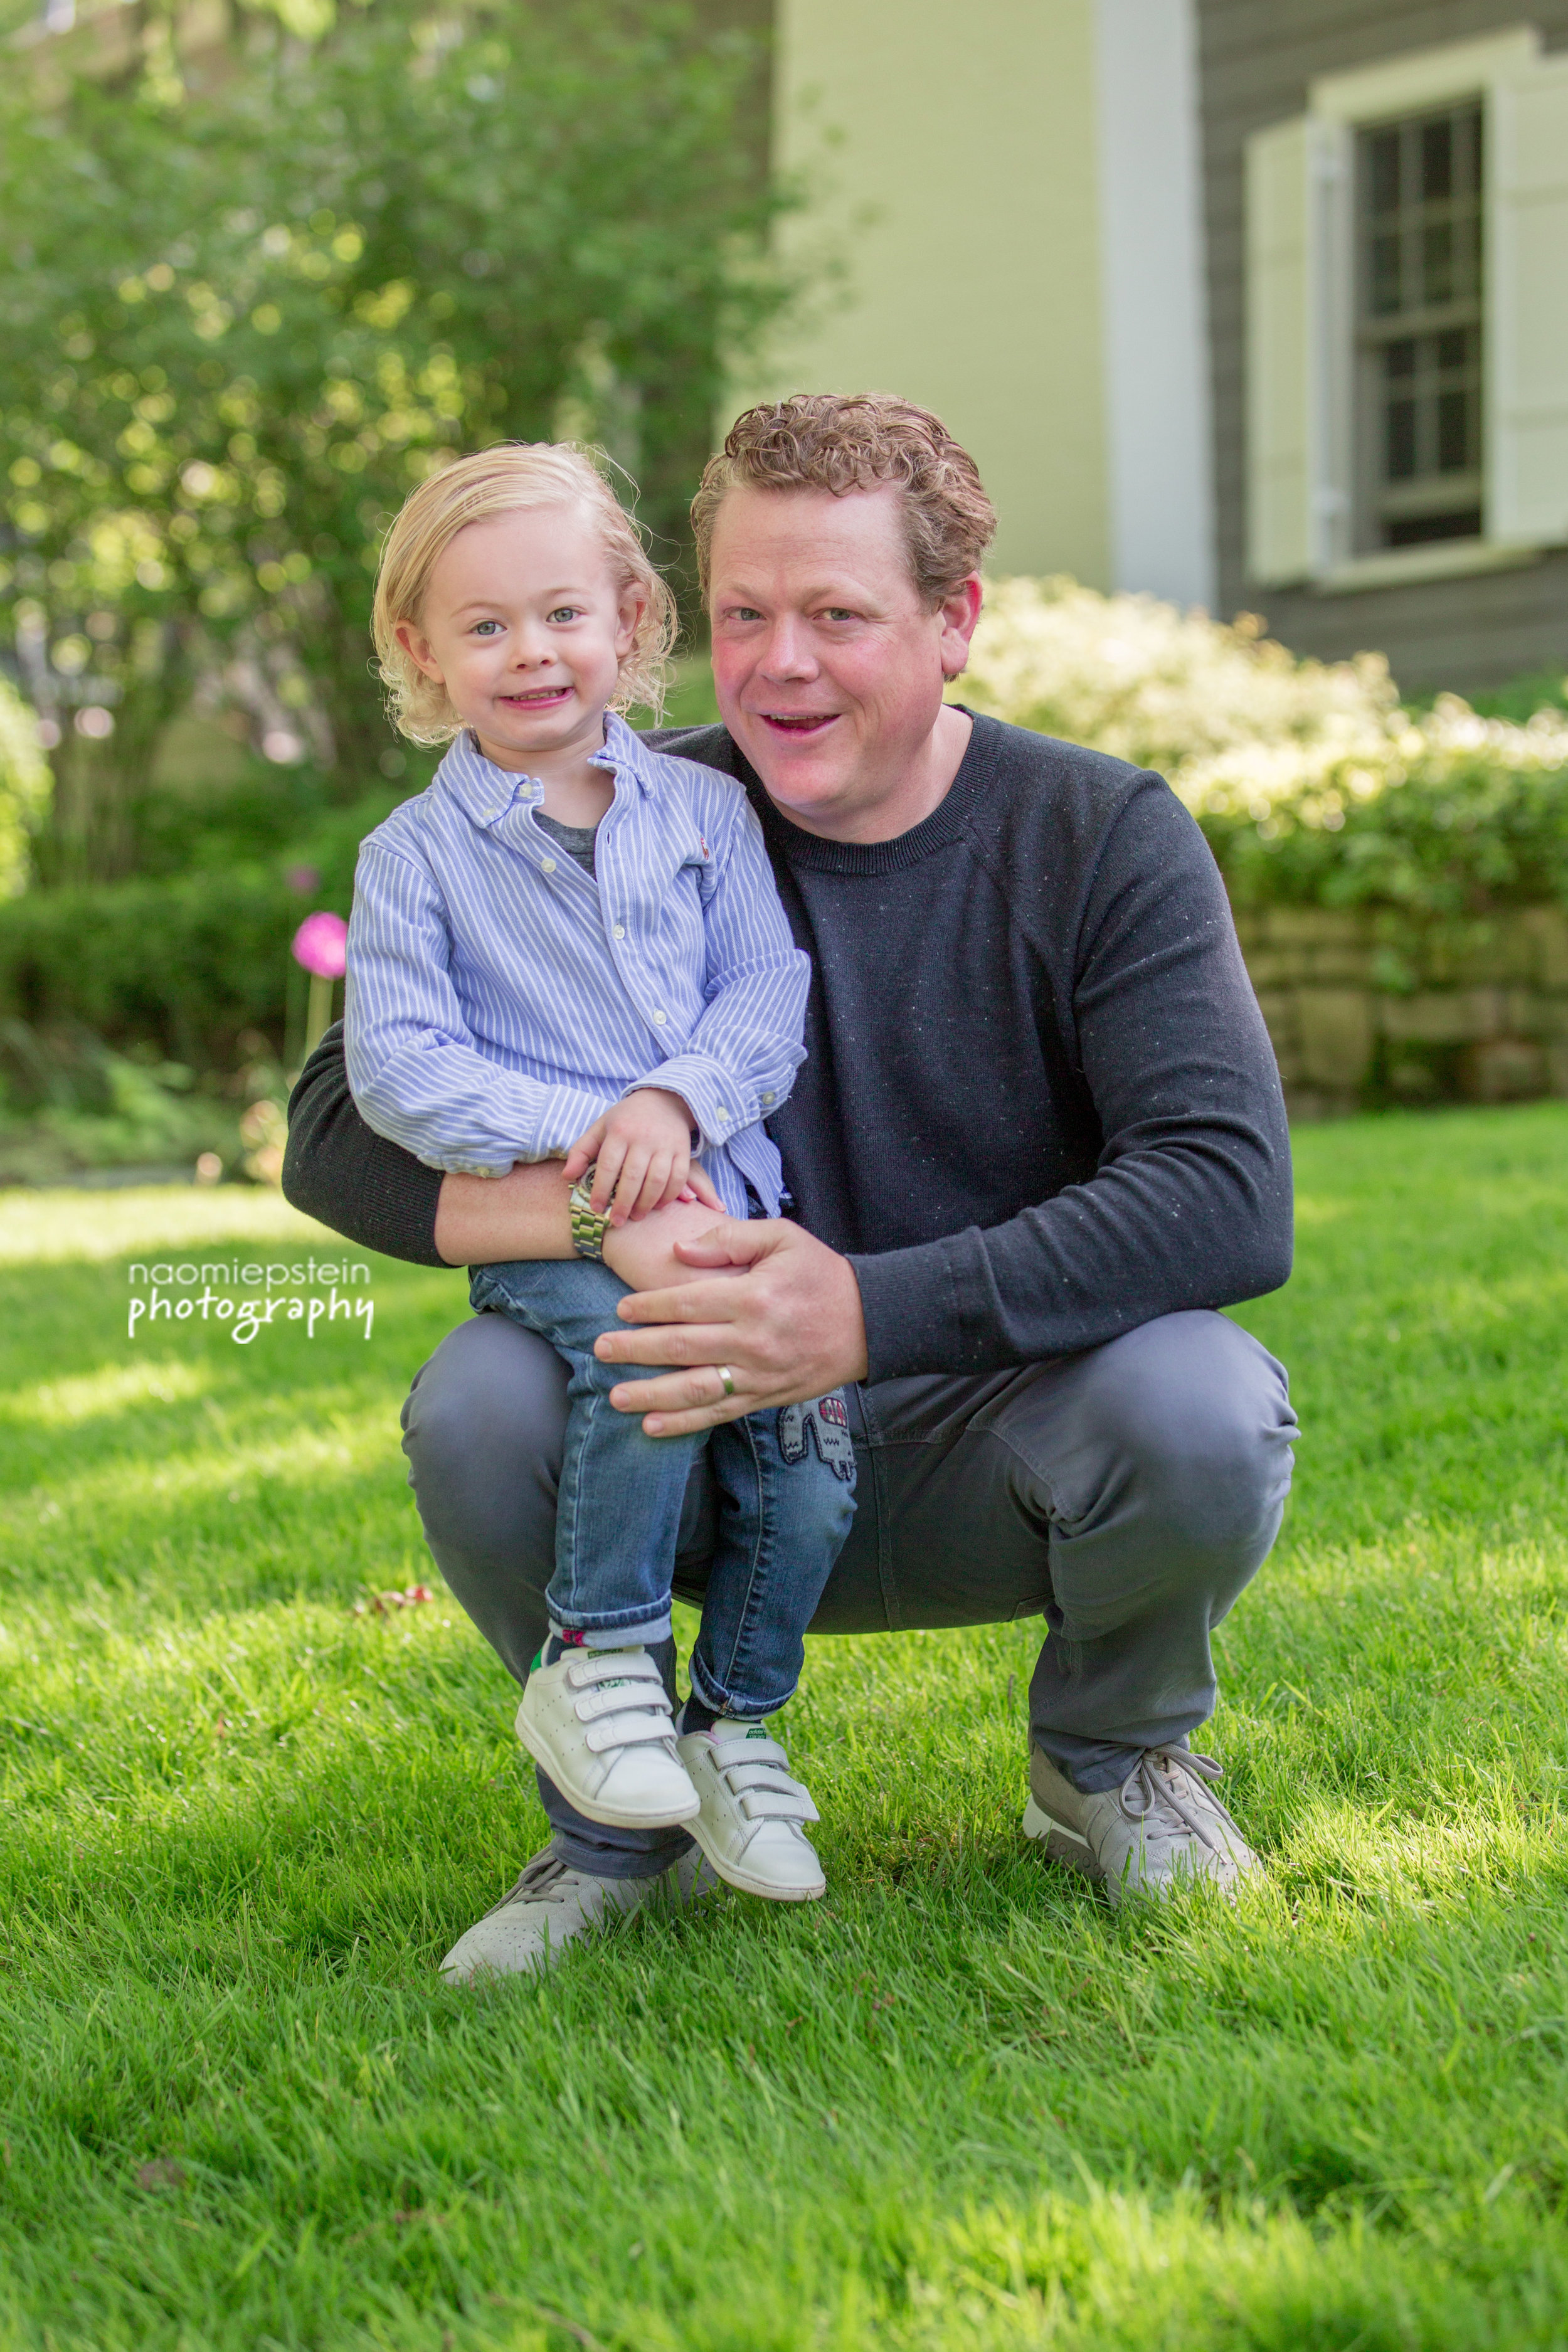 Highland_Park_Illinois_Family_Photographer_32.jpg